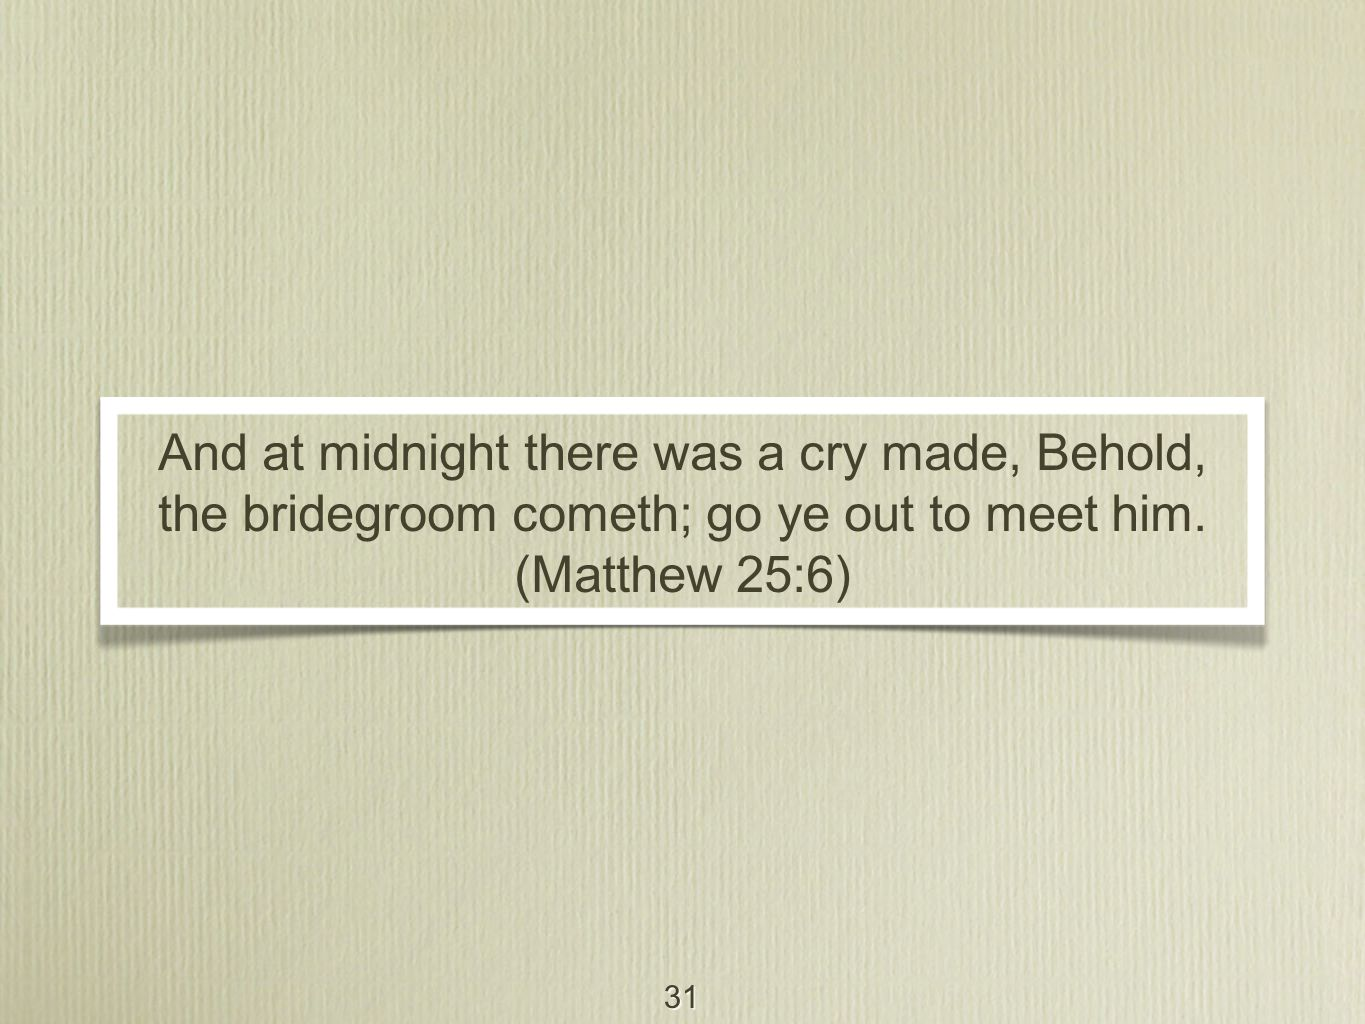 31 And at midnight there was a cry made, Behold, the bridegroom cometh; go ye out to meet him.